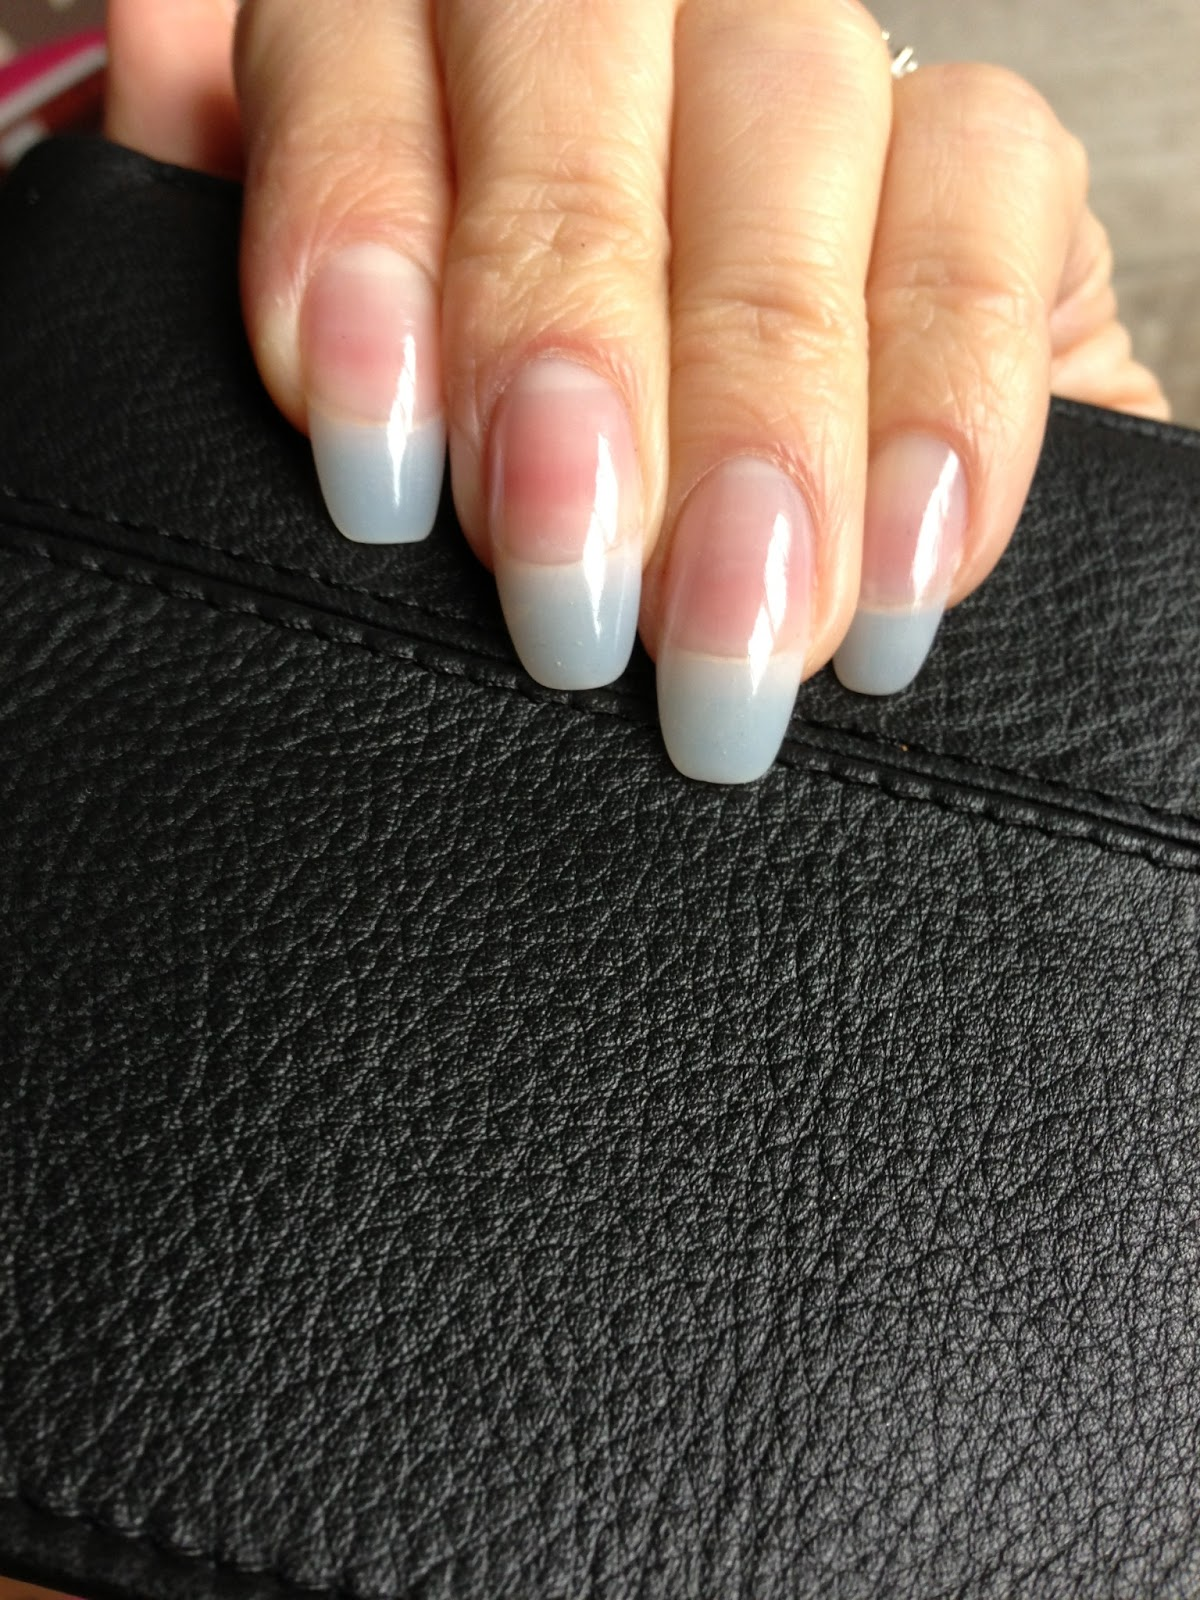 Clear Natural Tip With A Gel Overlay Very Look An Option To Paint It Any Color Or Design You Want